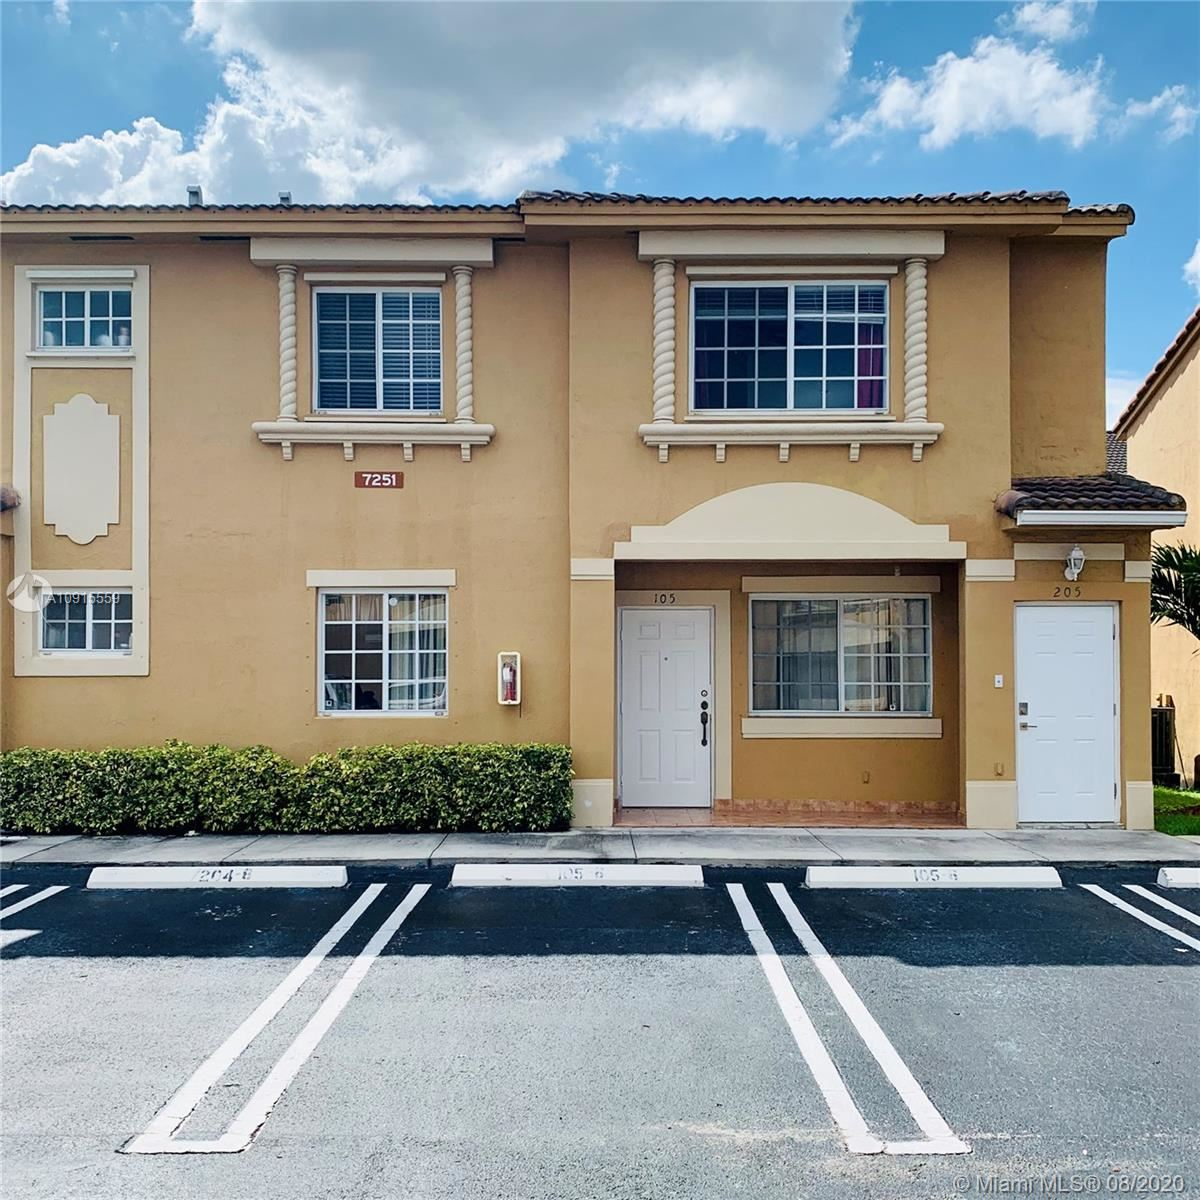 7251 NW 174th Ter #205, Hialeah, FL 33015 - #: A10915559